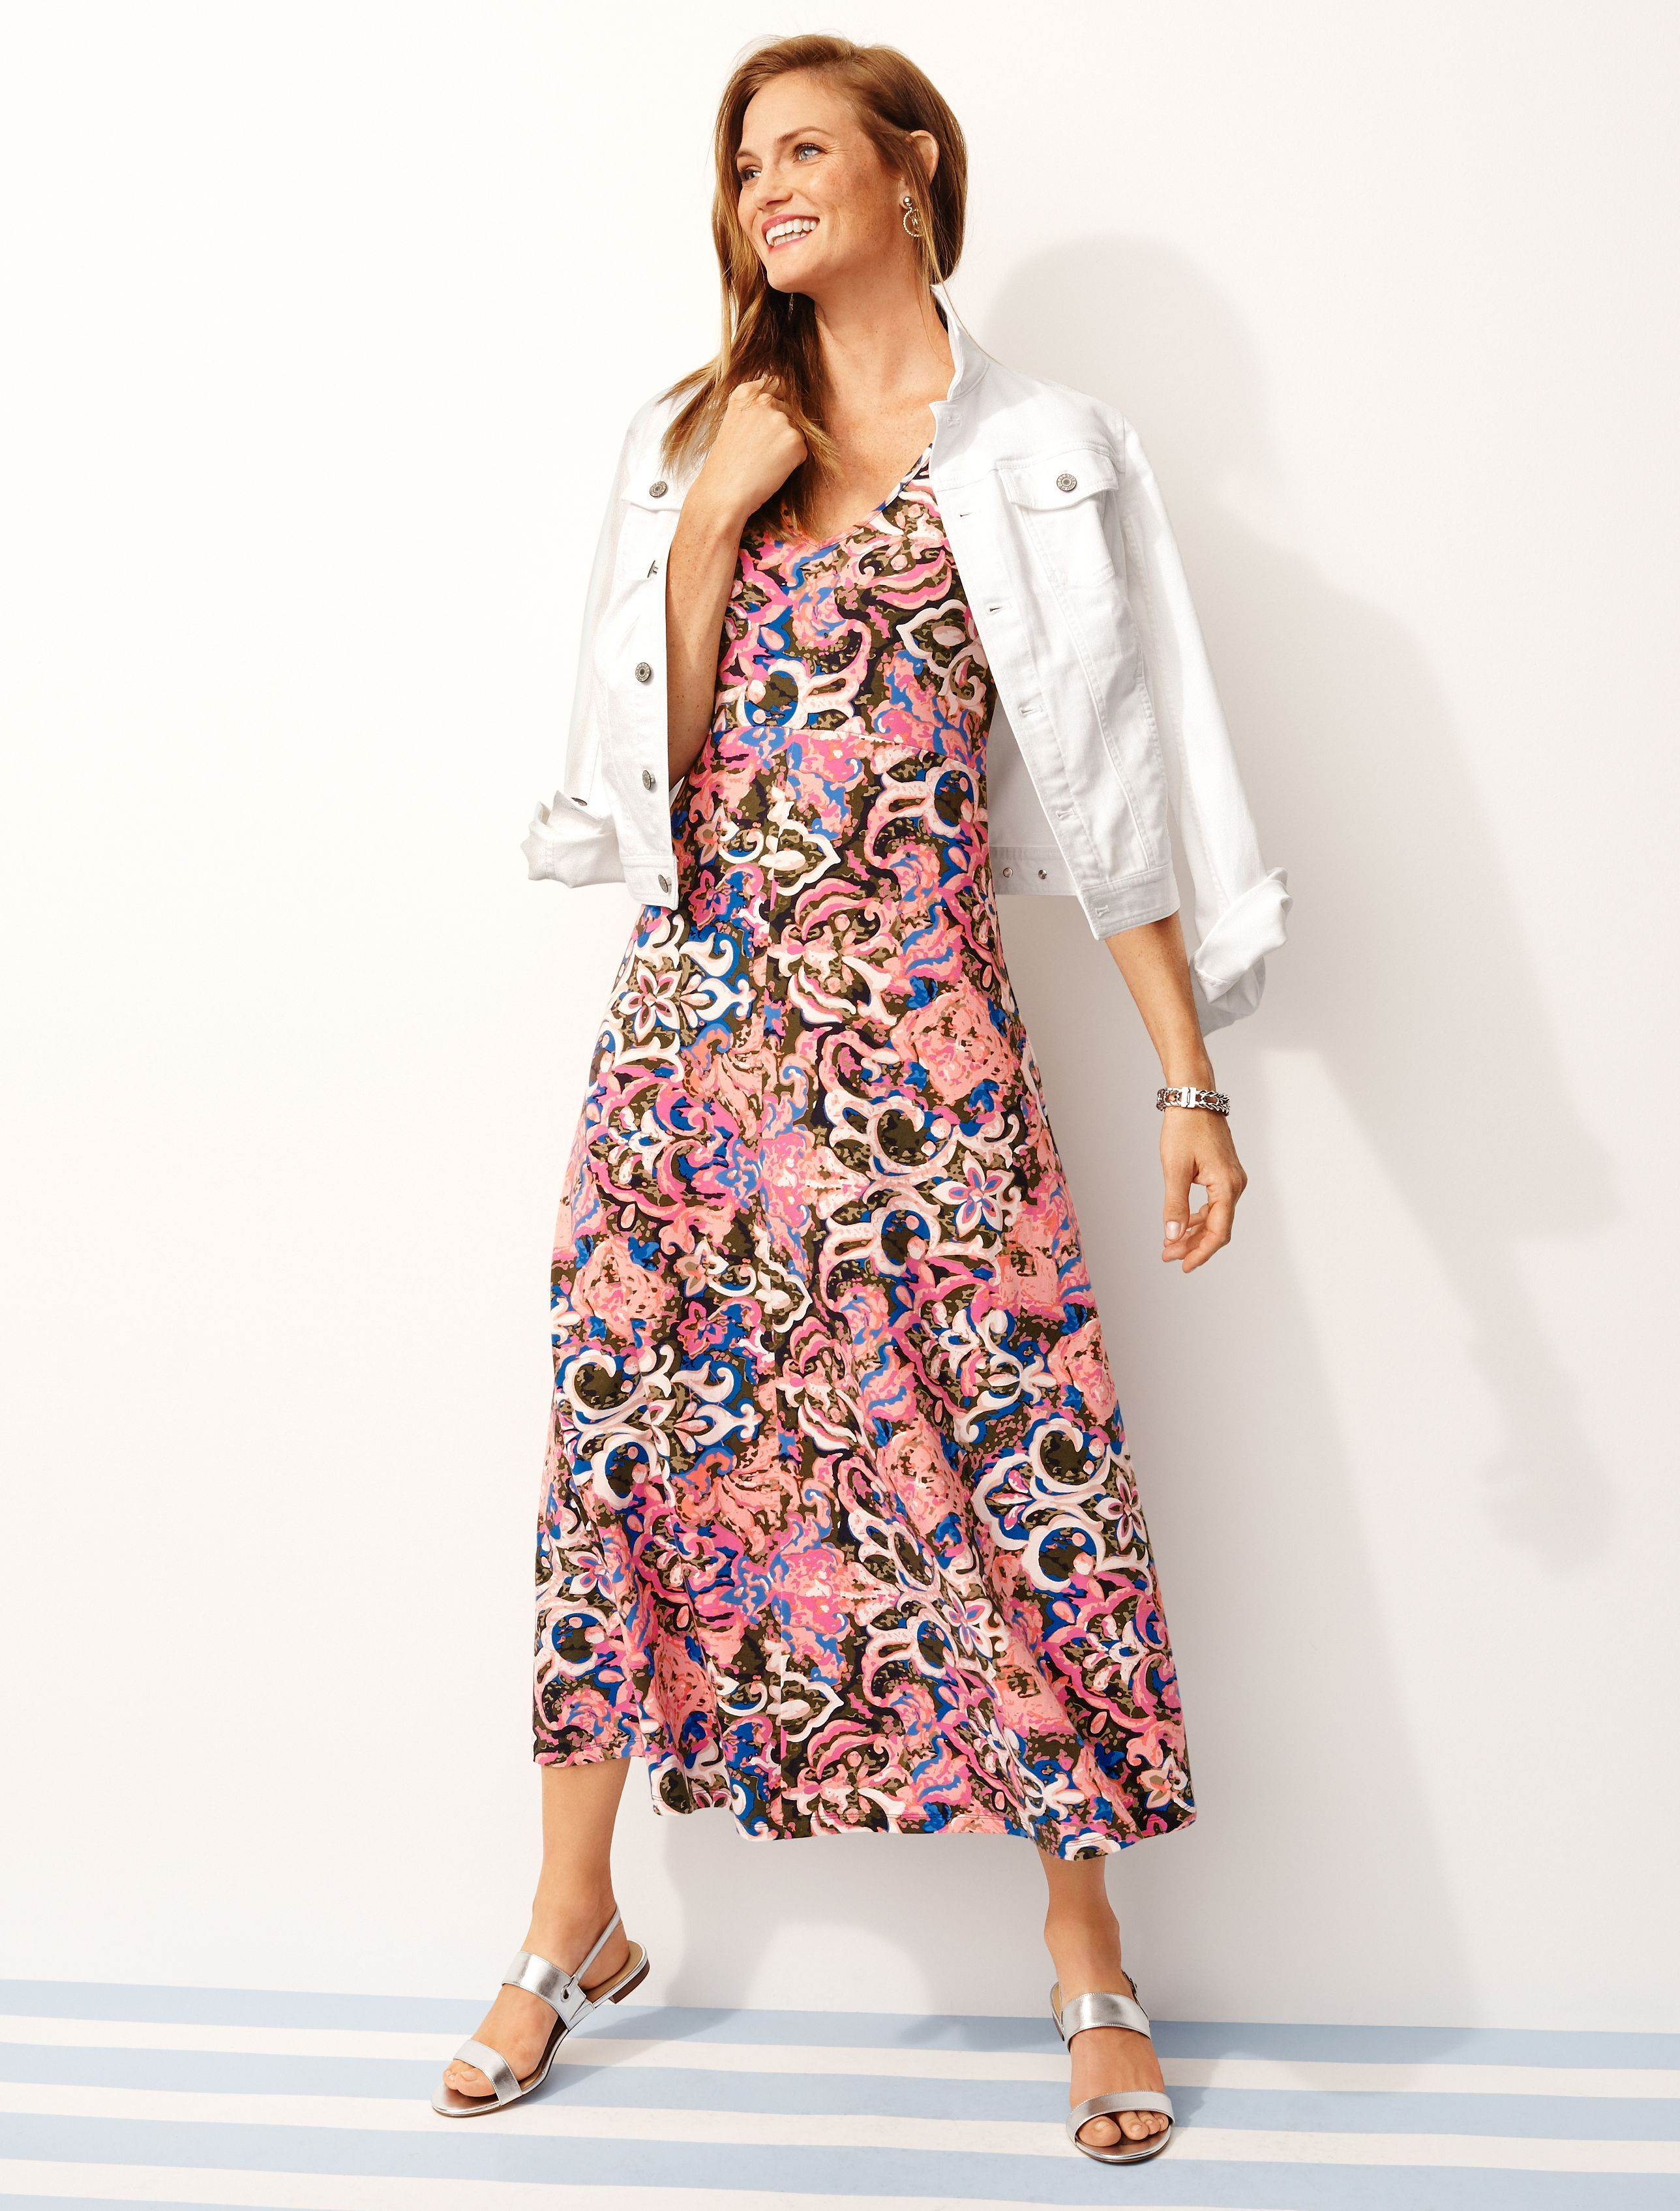 08835afea37 A colorful maxi dress made of our drapey casual jersey fabric. This  easy-to-wear style is equal parts flowy